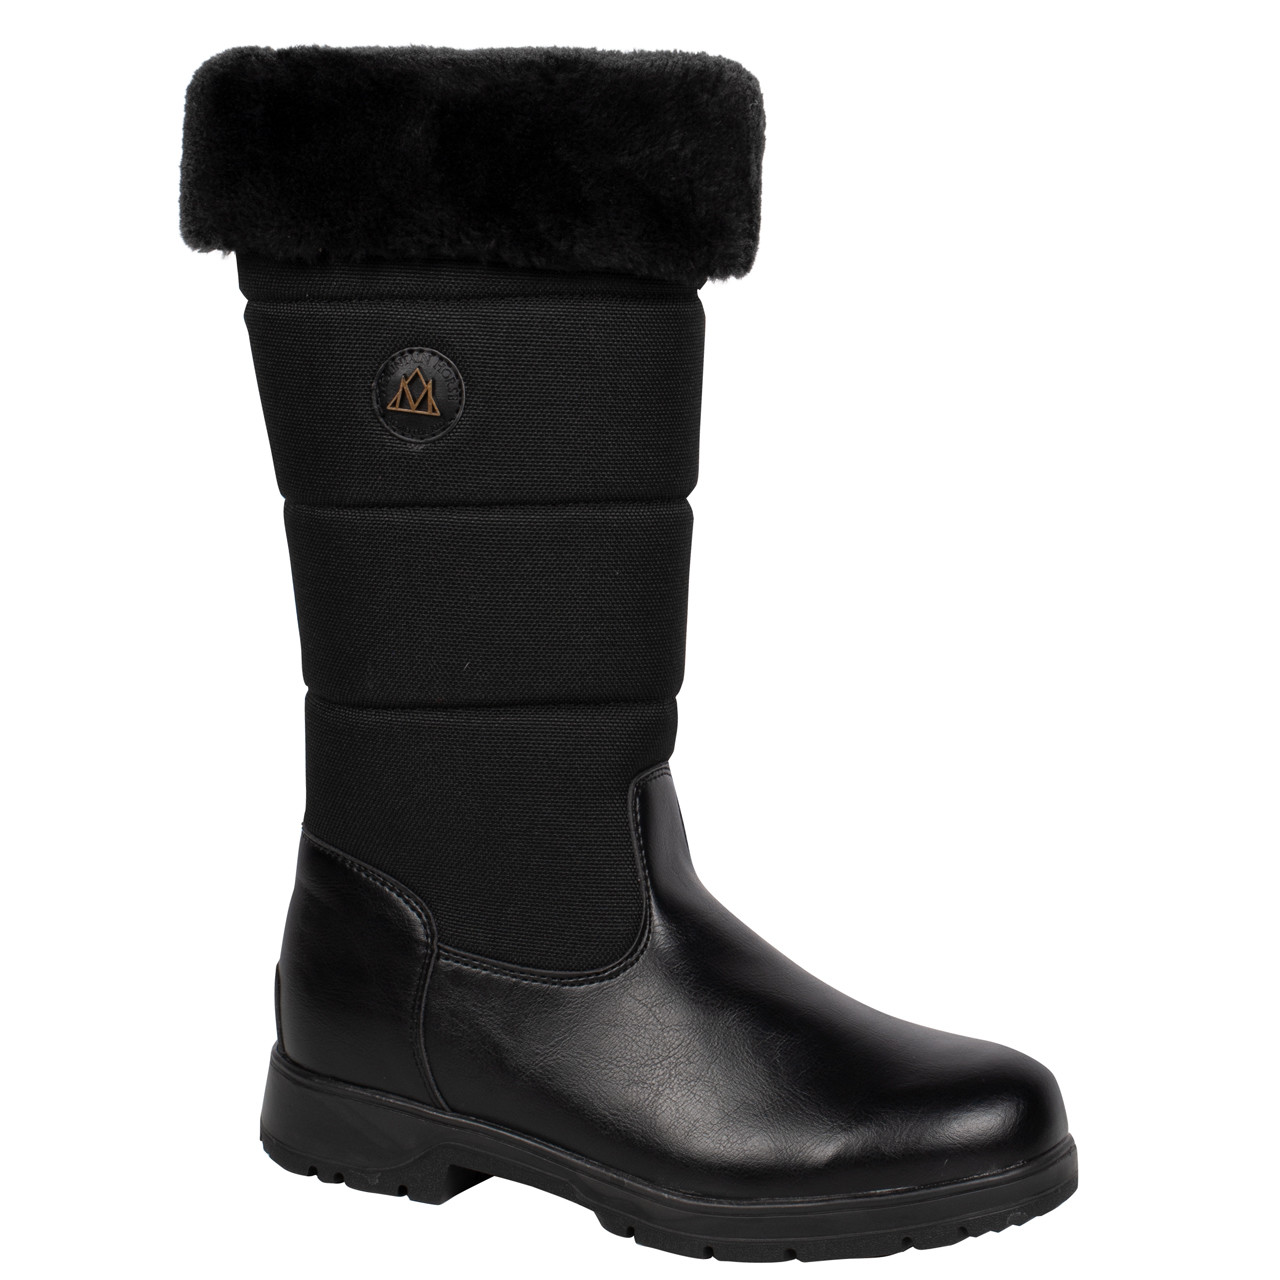 Mountain Horse Vermont Mid Height laars zwart maat:40